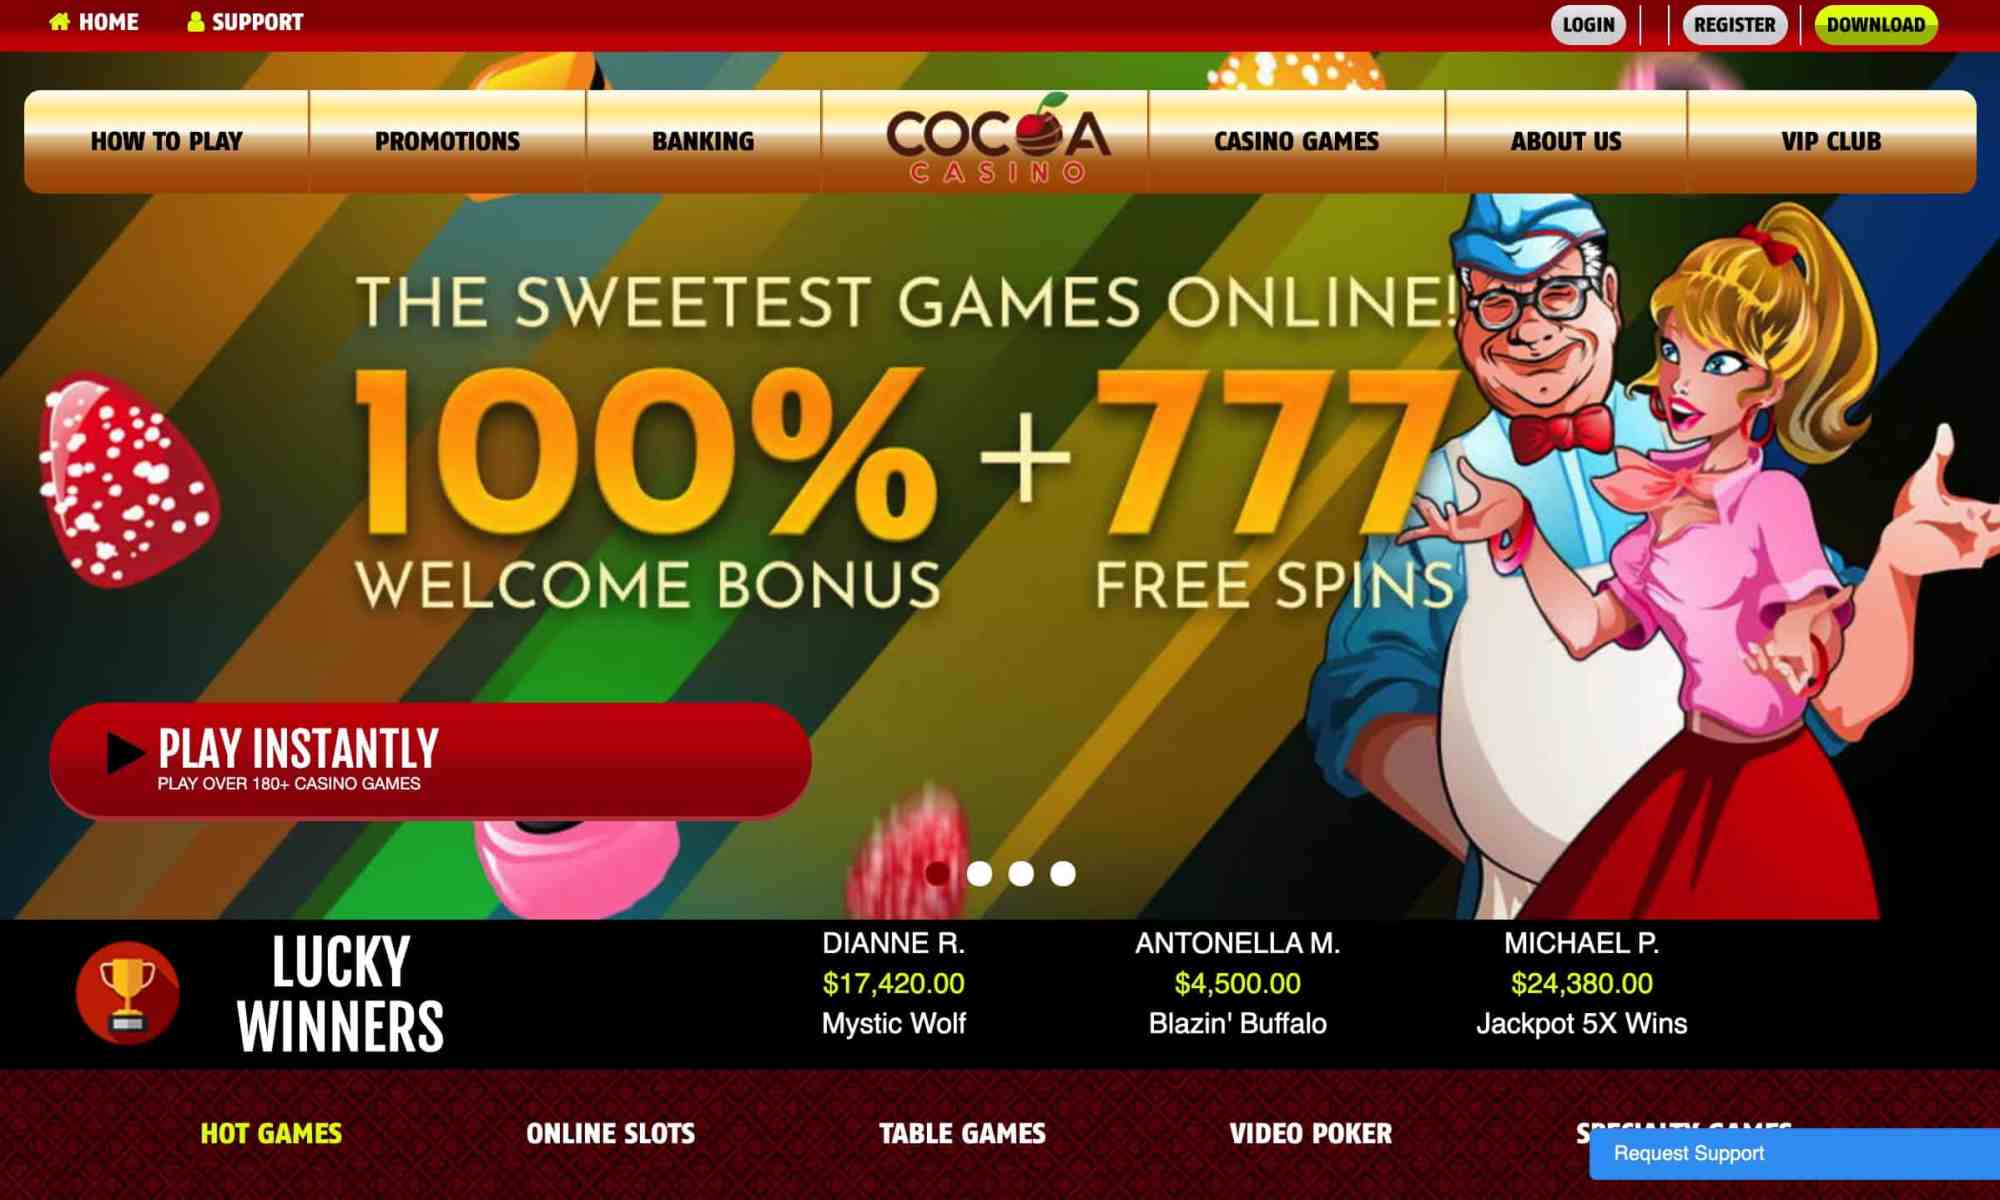 Cocoa Casino - claim 777 casino spins + 100% welcome offer